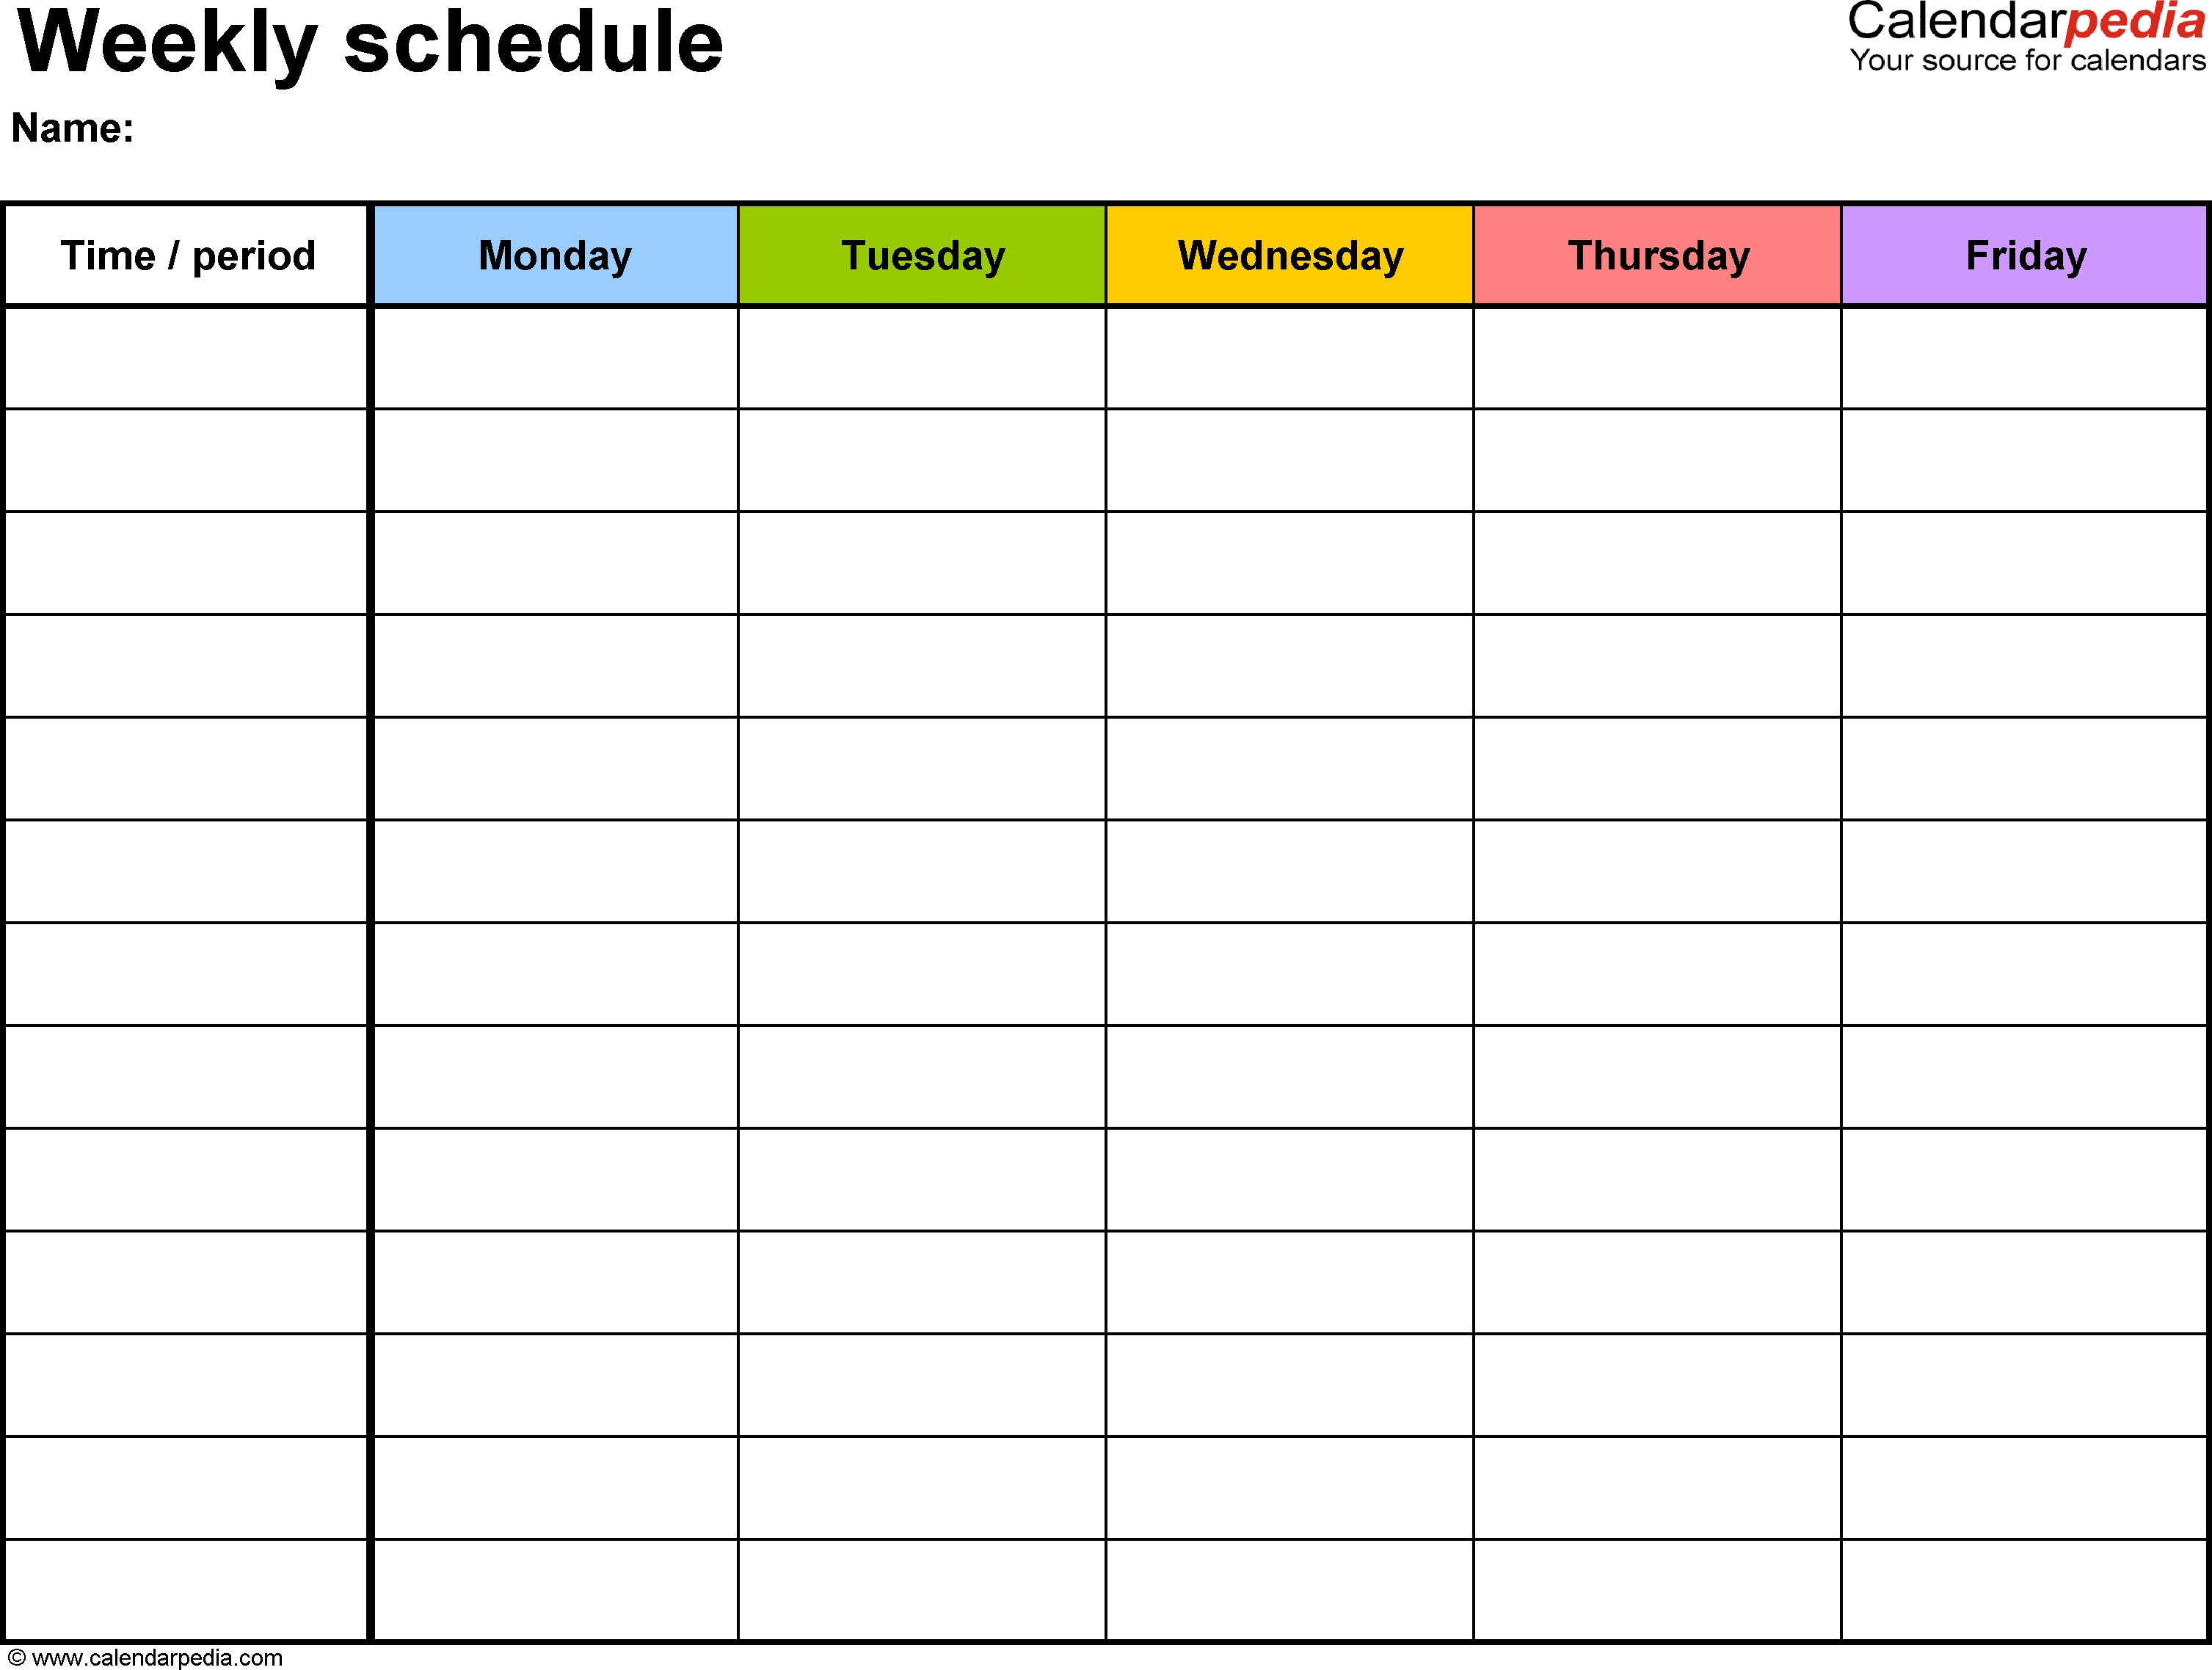 Free Weekly Schedule Templates For Word - 18 Templates for Weekly Schedule Template Free To Print